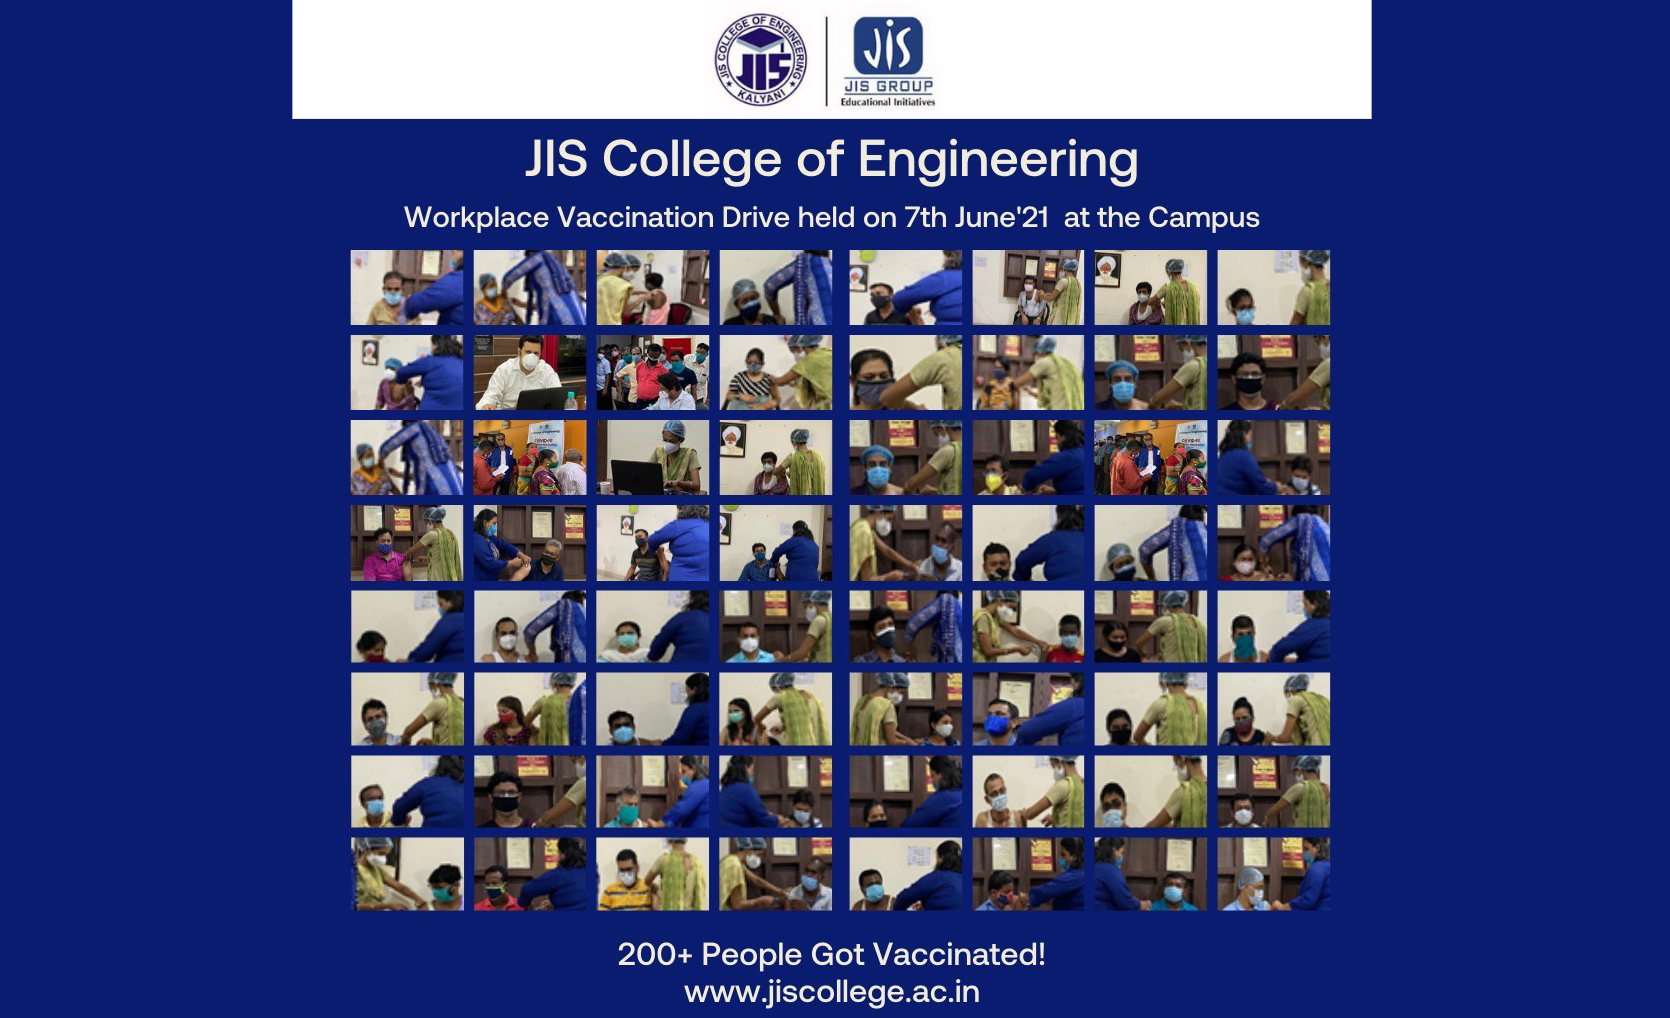 JIS College of Engineering vaccinates all the staff members and their family